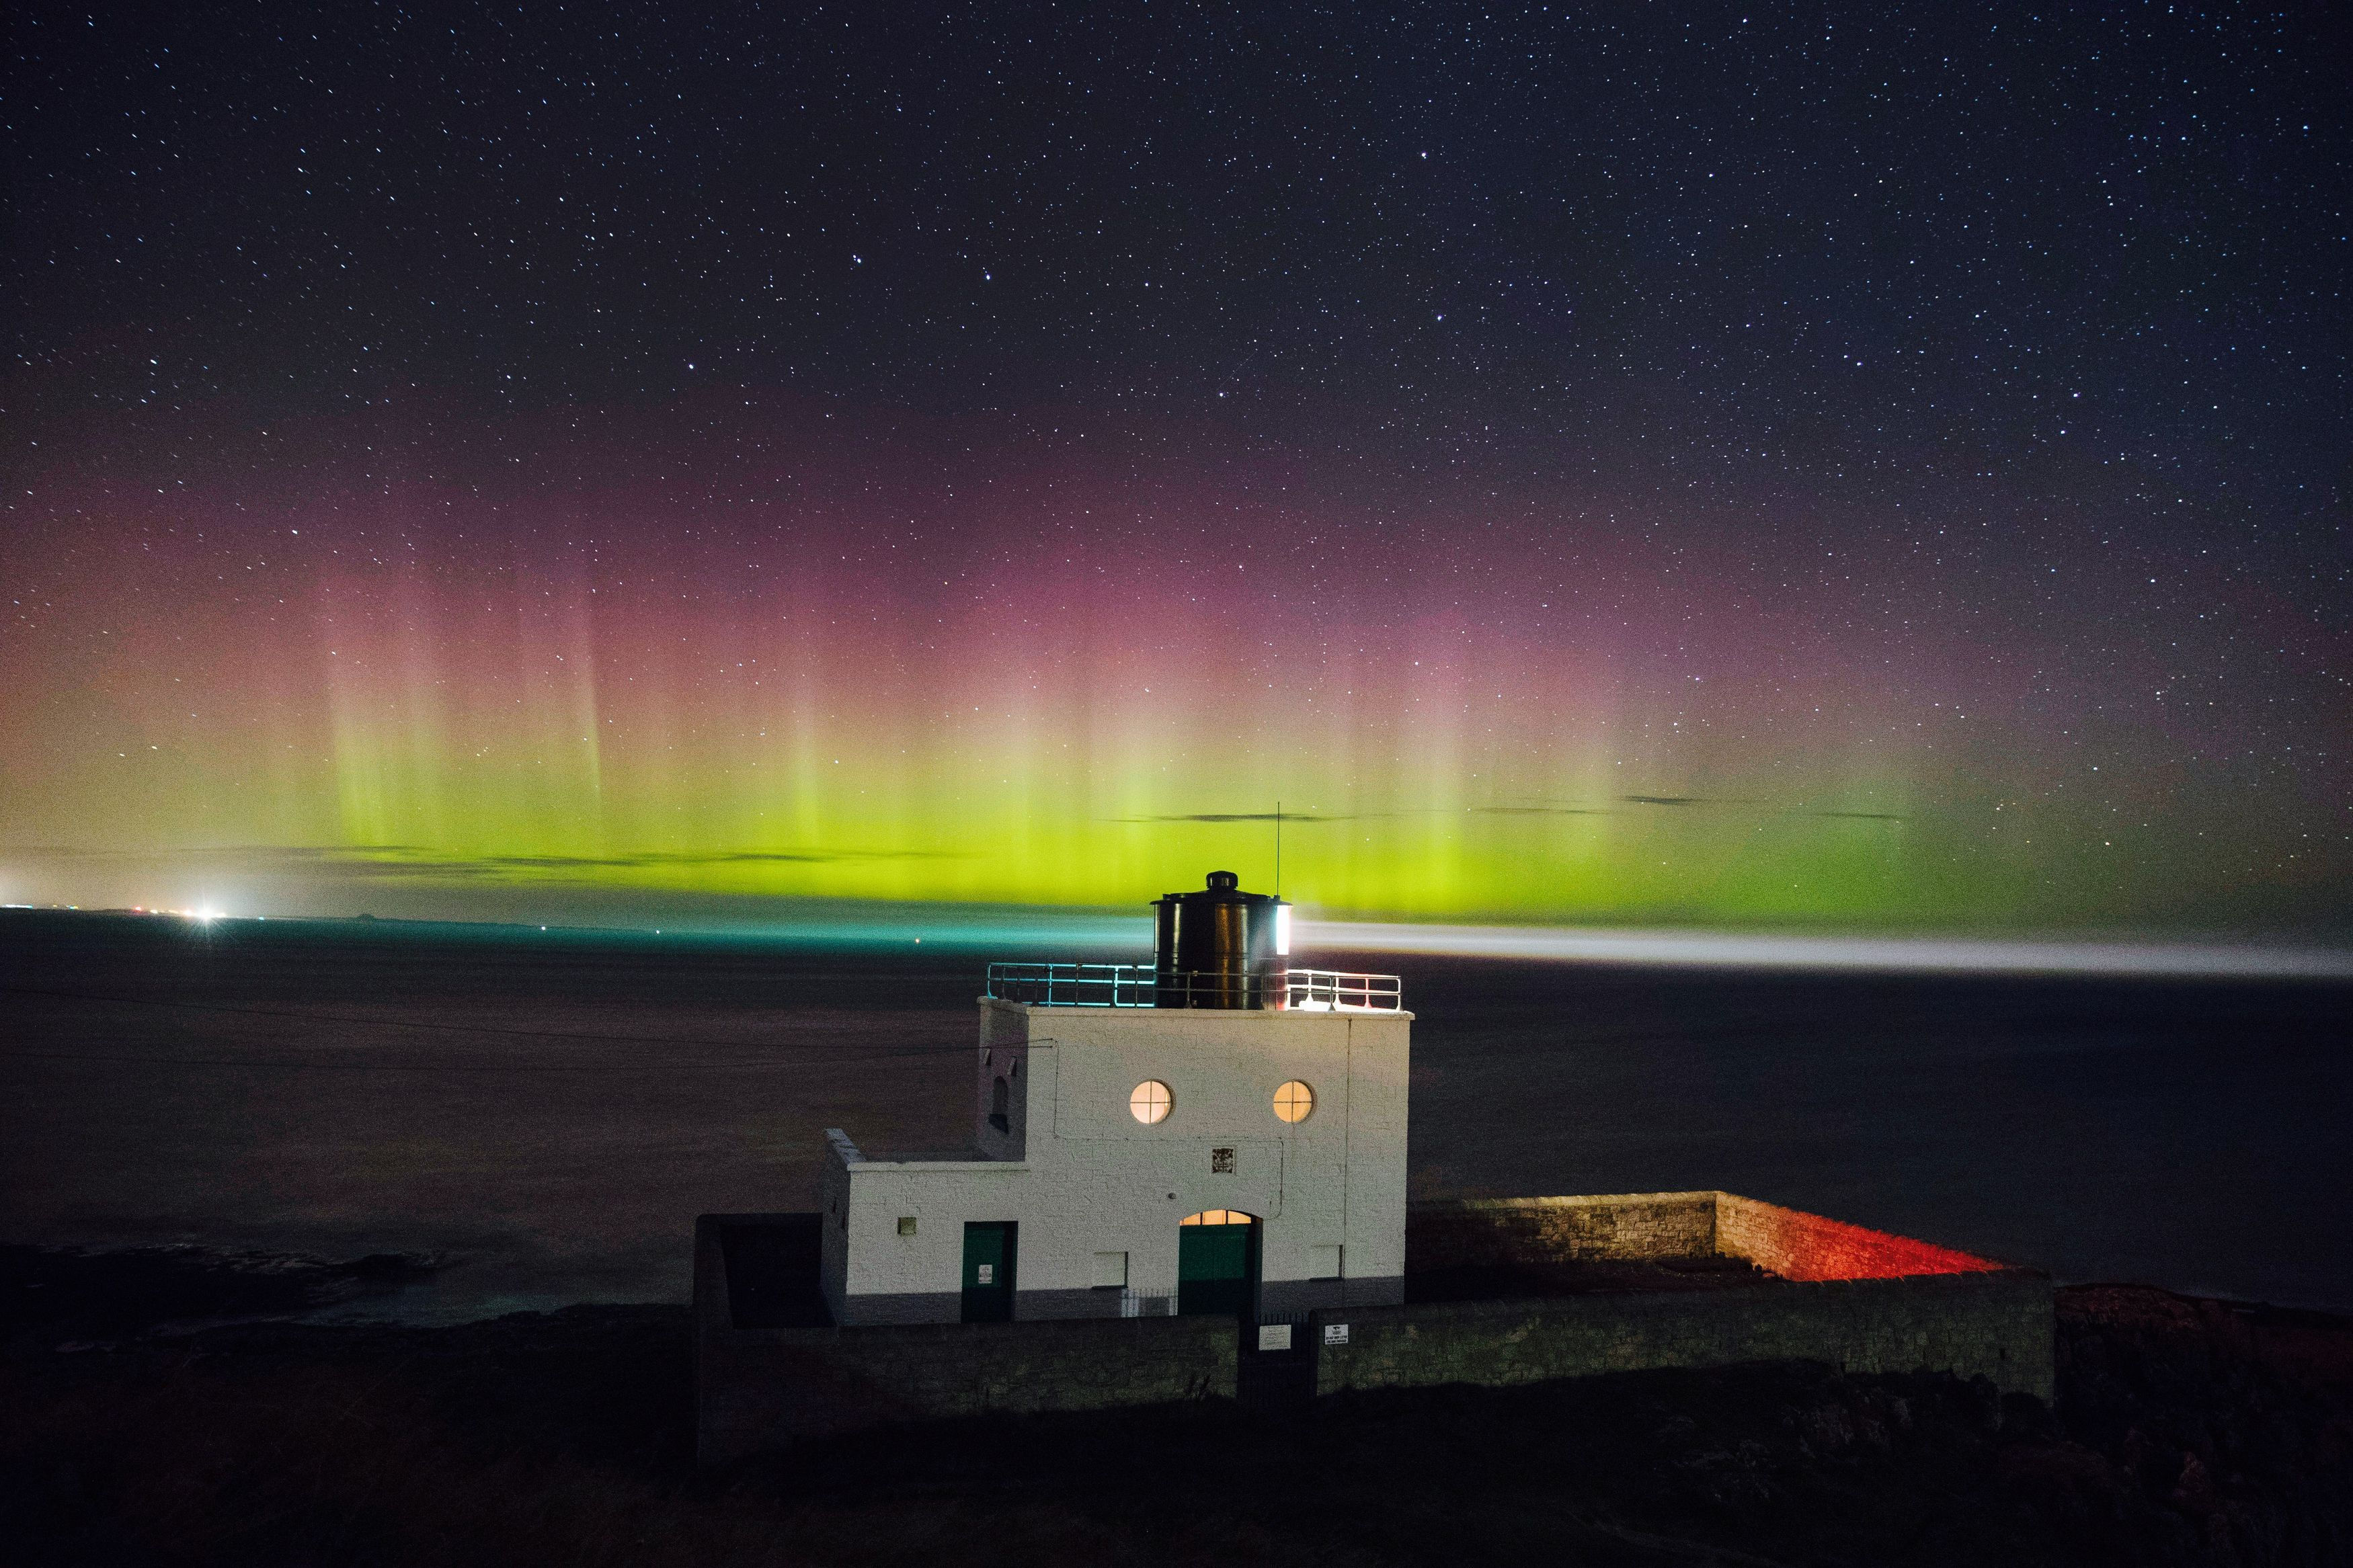 Northern Lights seen in Northumberland, North East